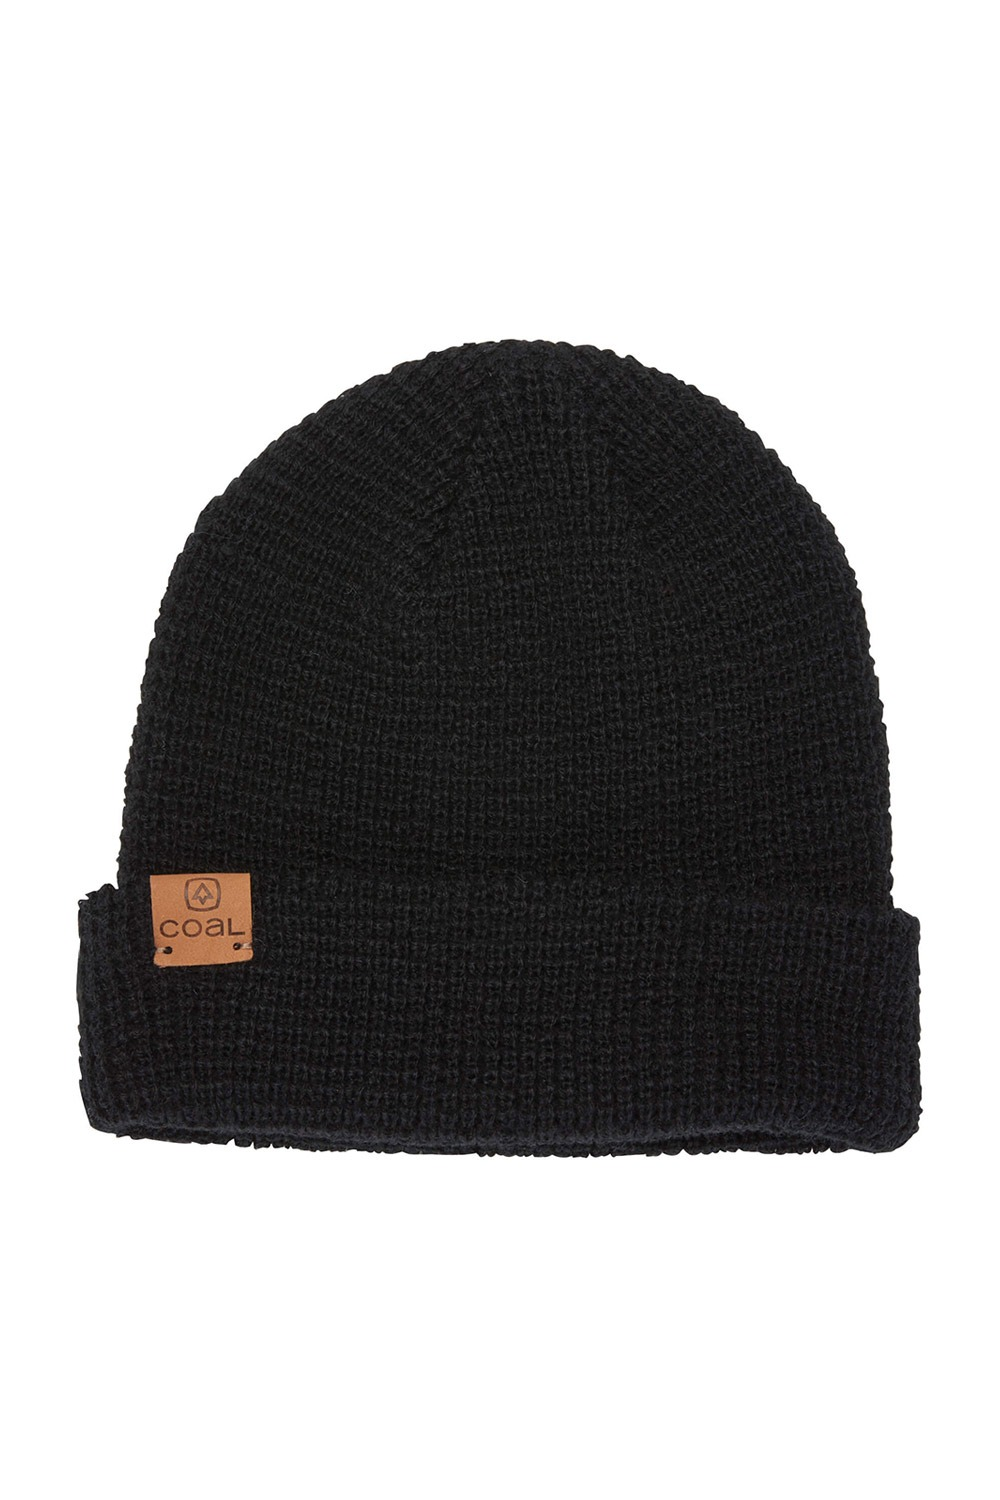 2021 콜 주노 비니 모자  COAL THE JUNO BEANIES_BLK (BLACK)_DICA005BK